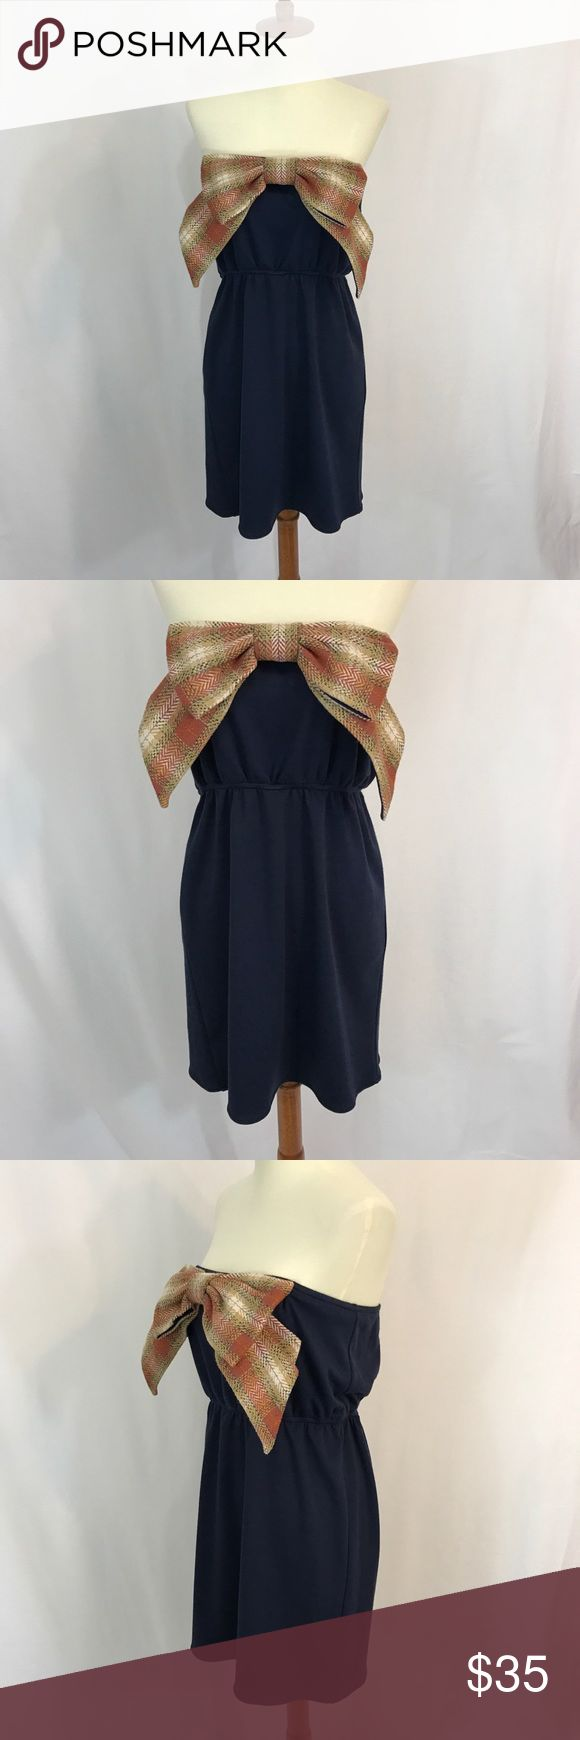 Judith March bow strapless dress Super cute! Bow design on front blouson style waist. Excellent condition! Judith March Dresses Strapless